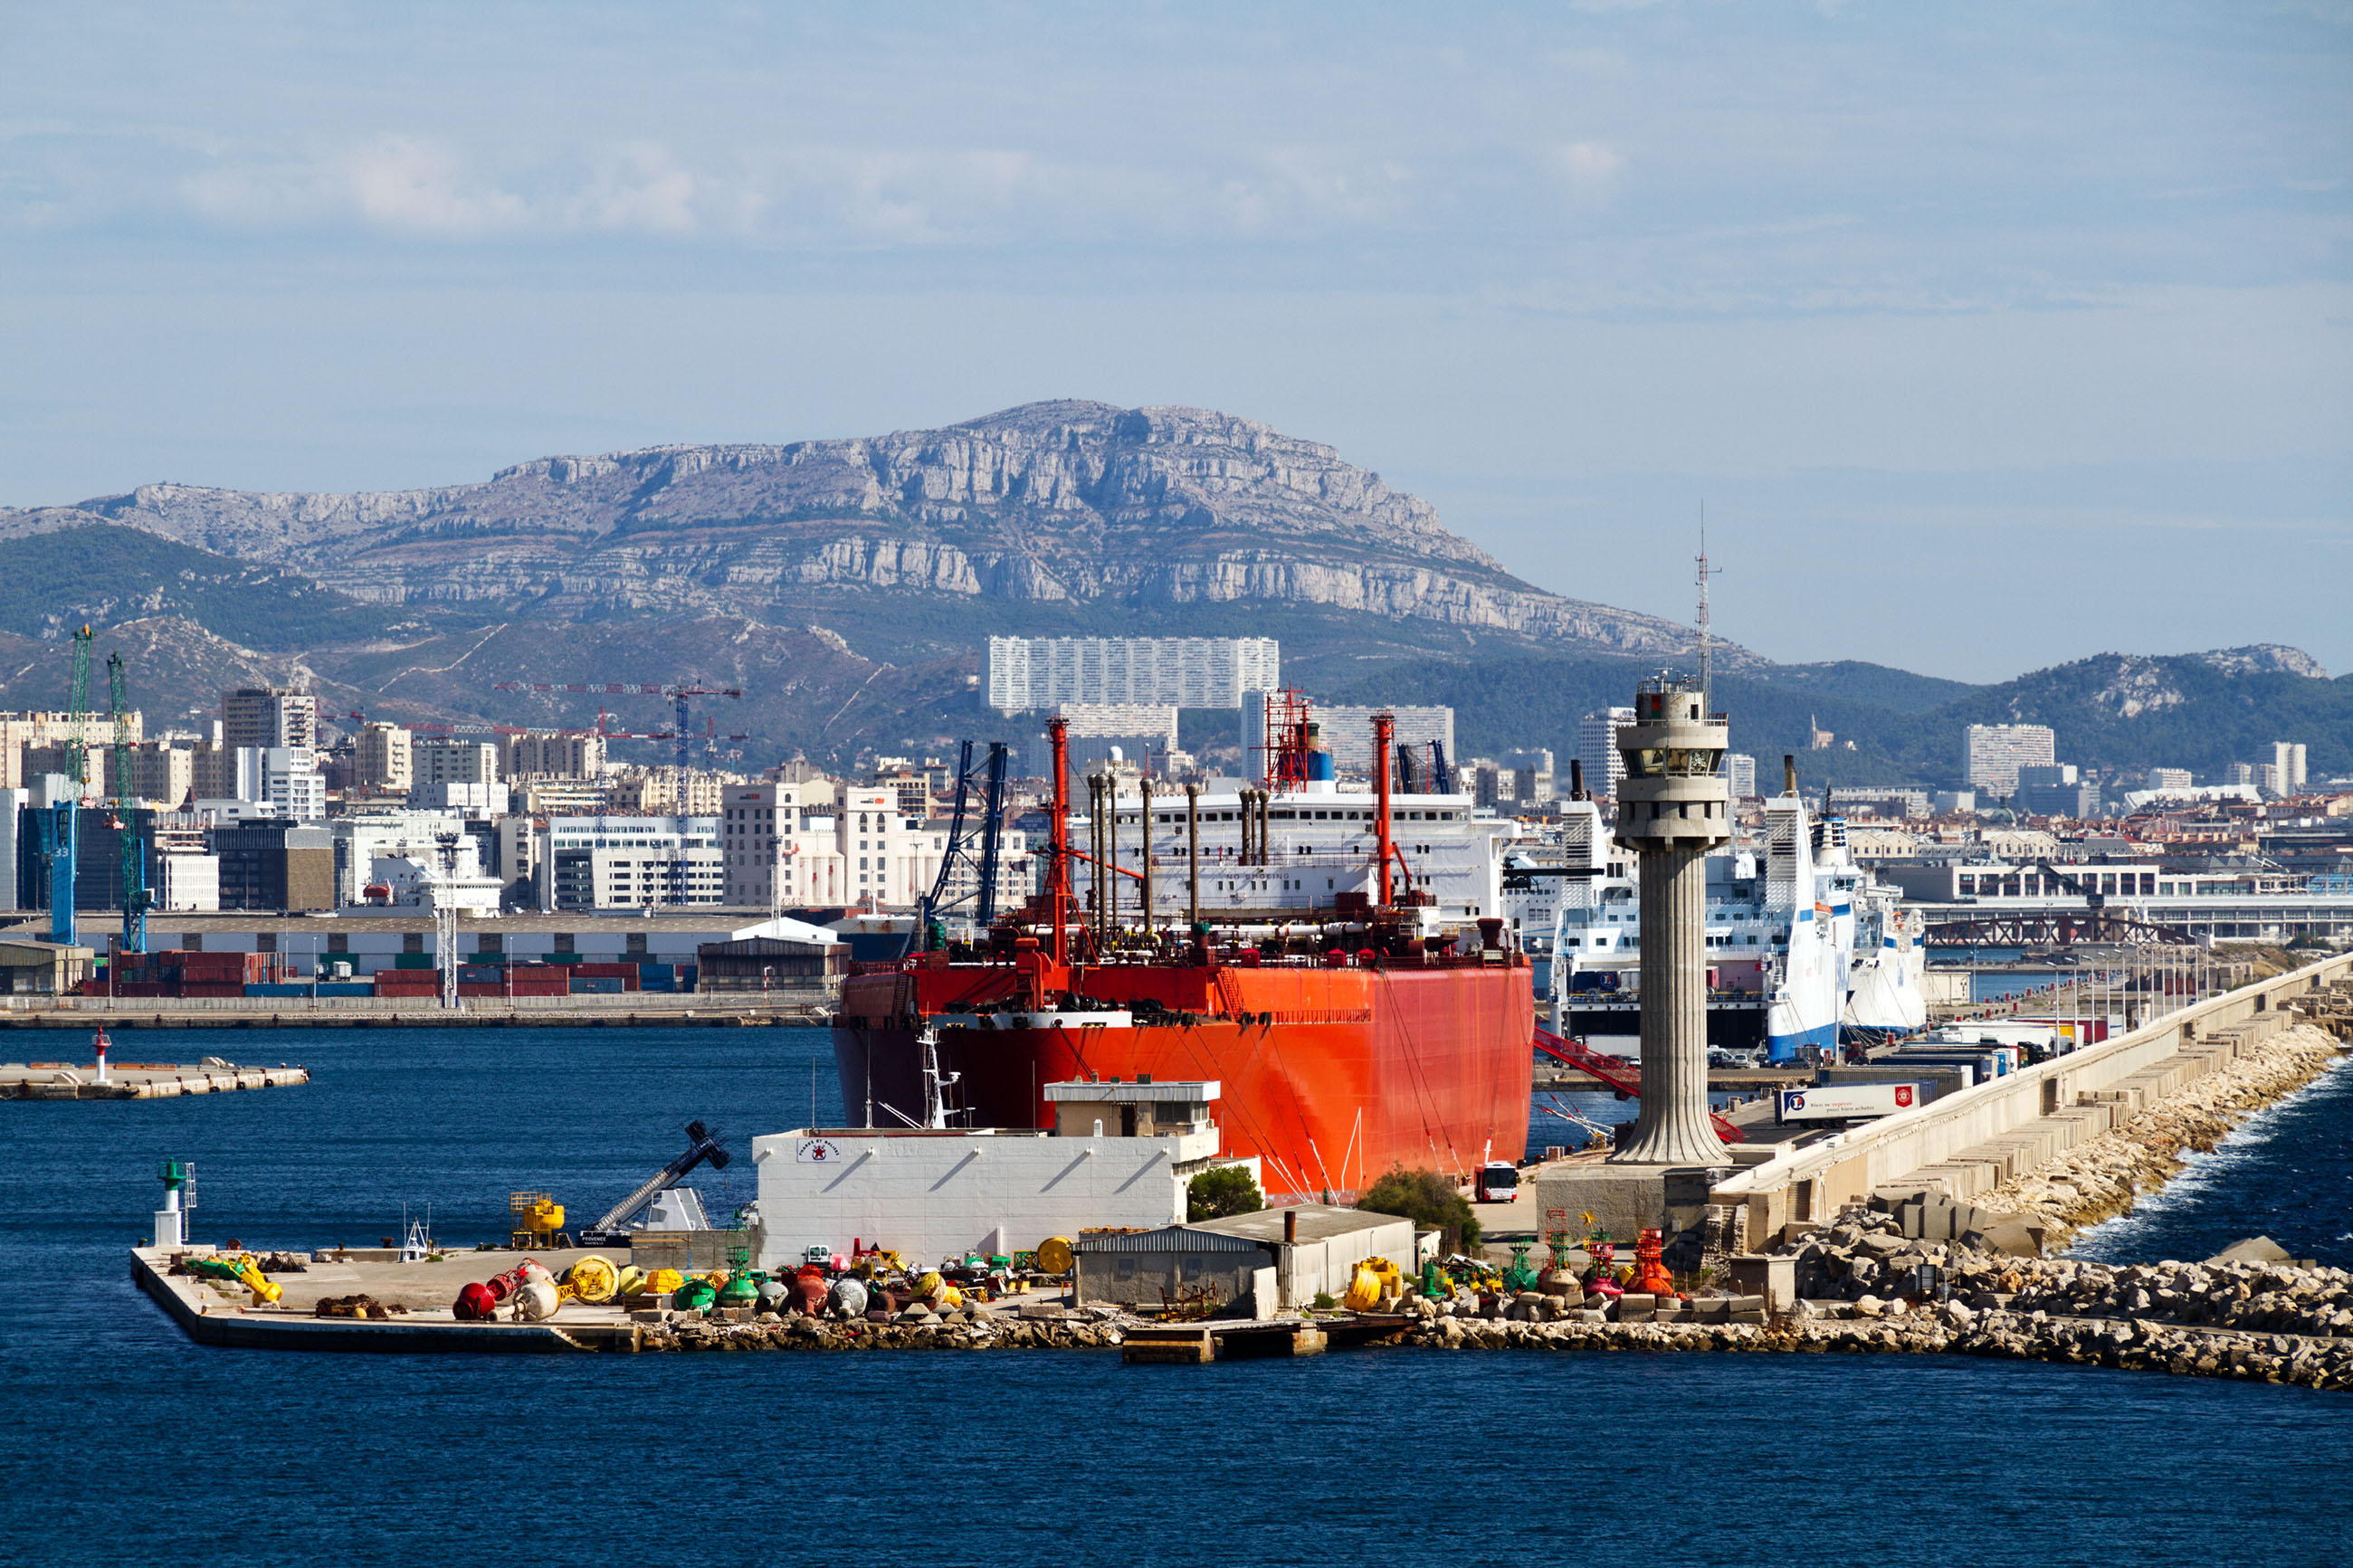 Commercial Port, Blue, Ships, Nautical, Ocean, HQ Photo